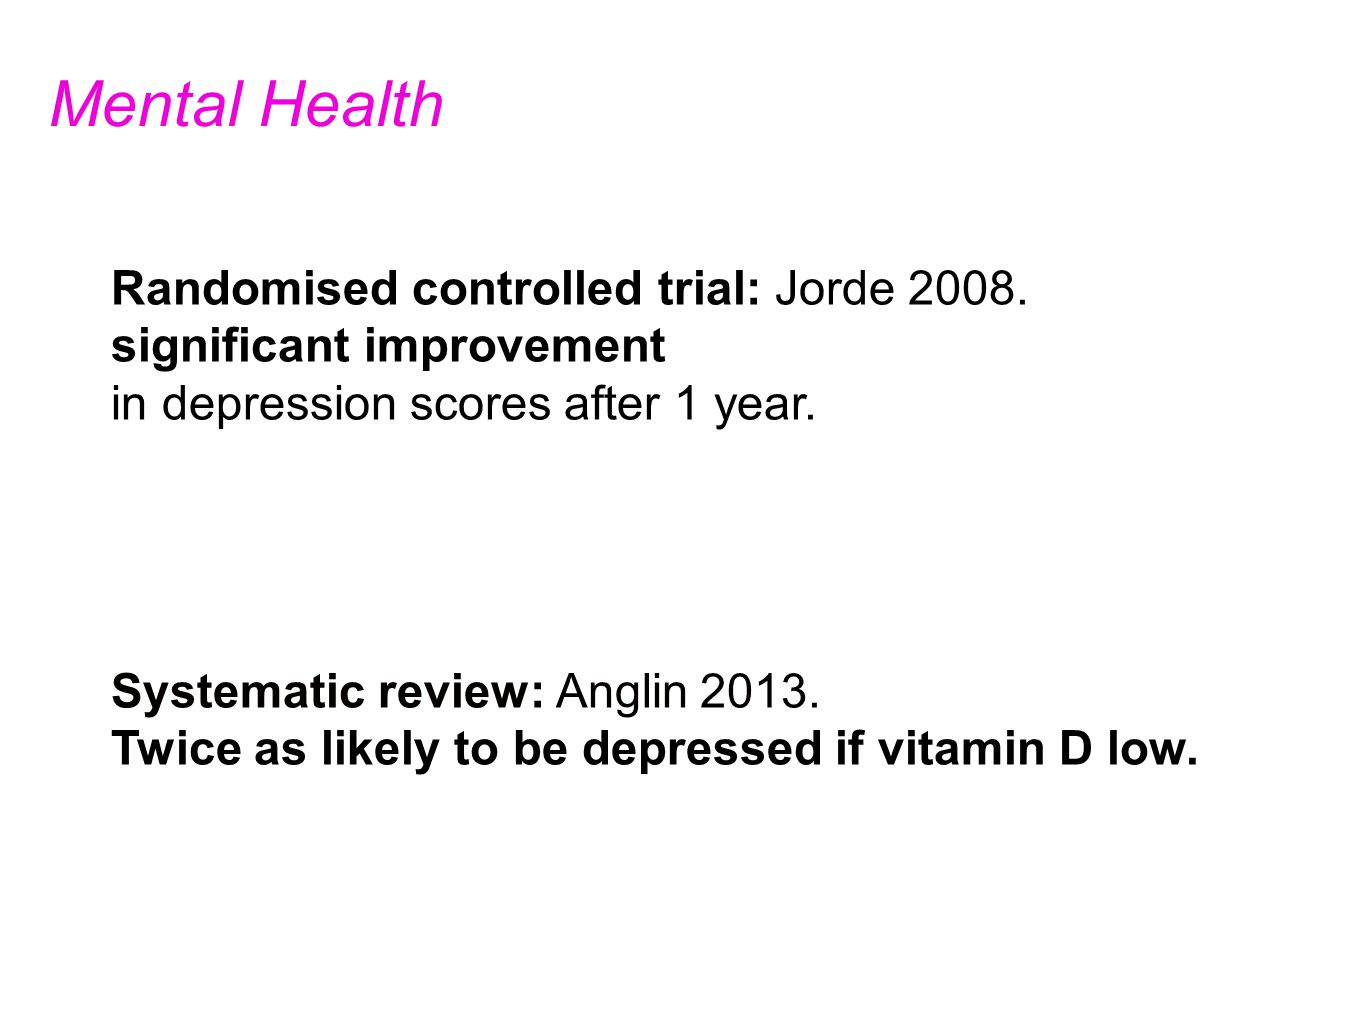 Randomised controlled trial: Jorde 2008. significant improvement in depression scores after 1 year.